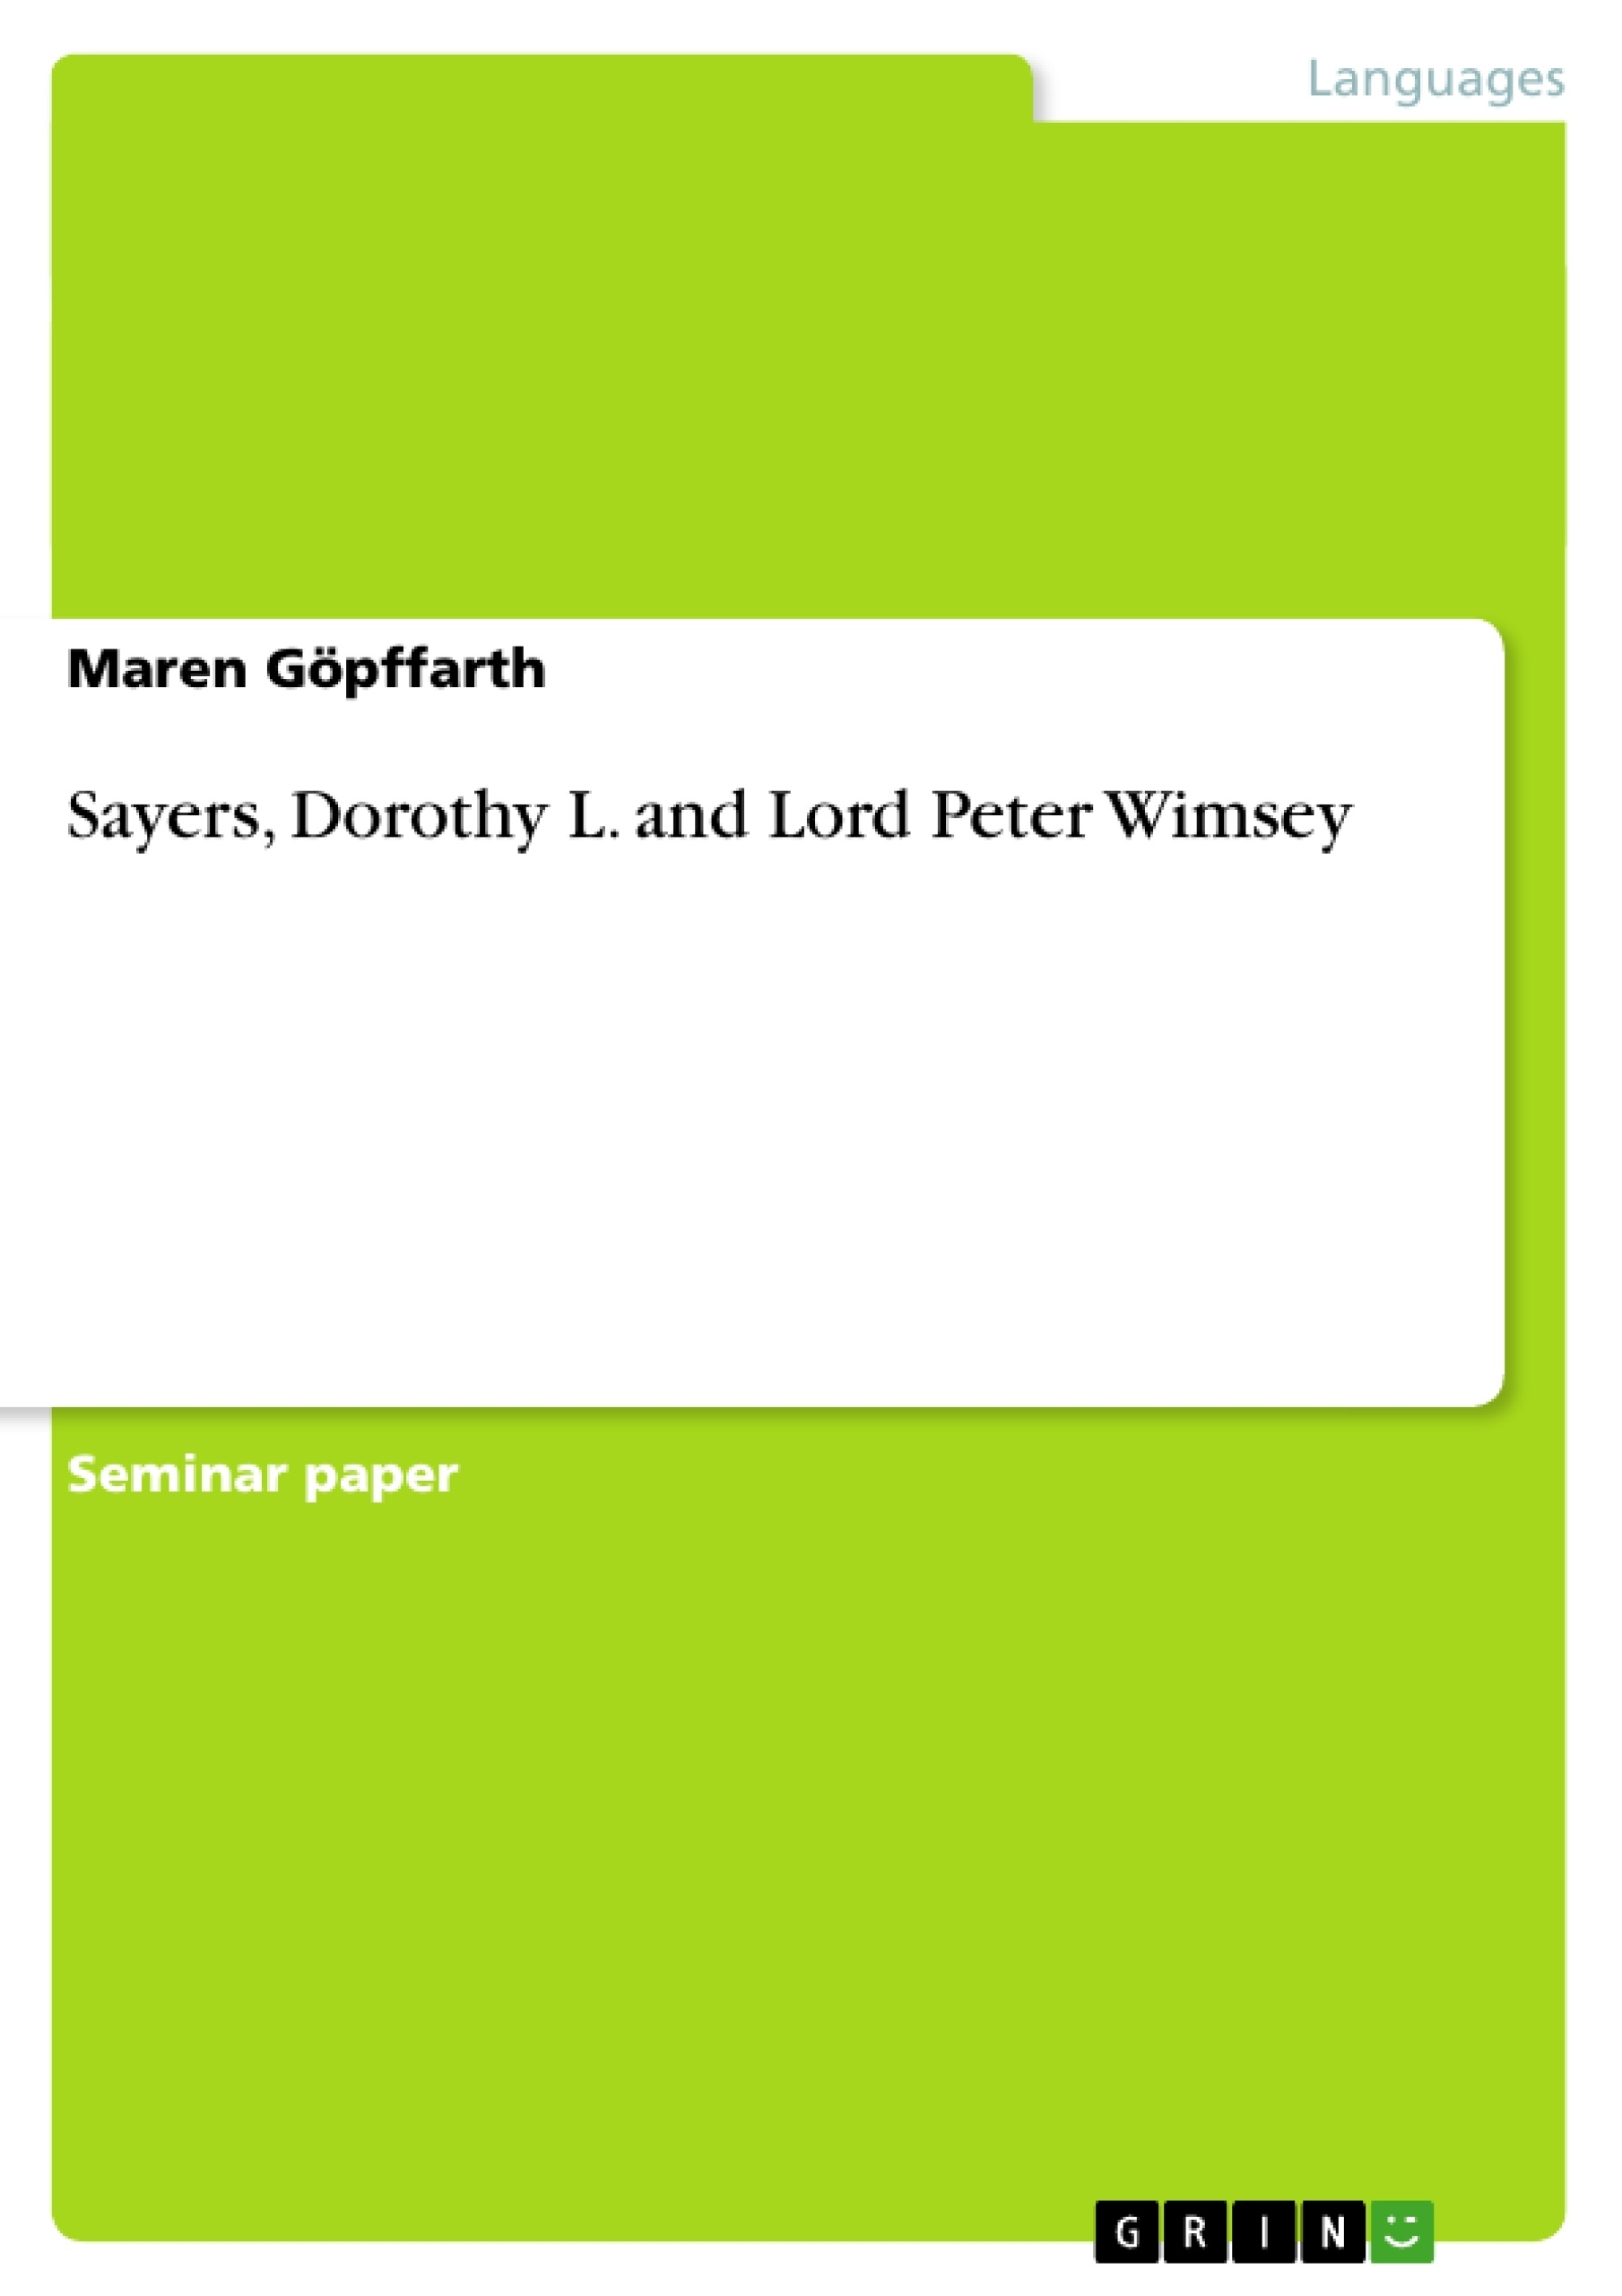 Title: Sayers, Dorothy L. and Lord Peter Wimsey